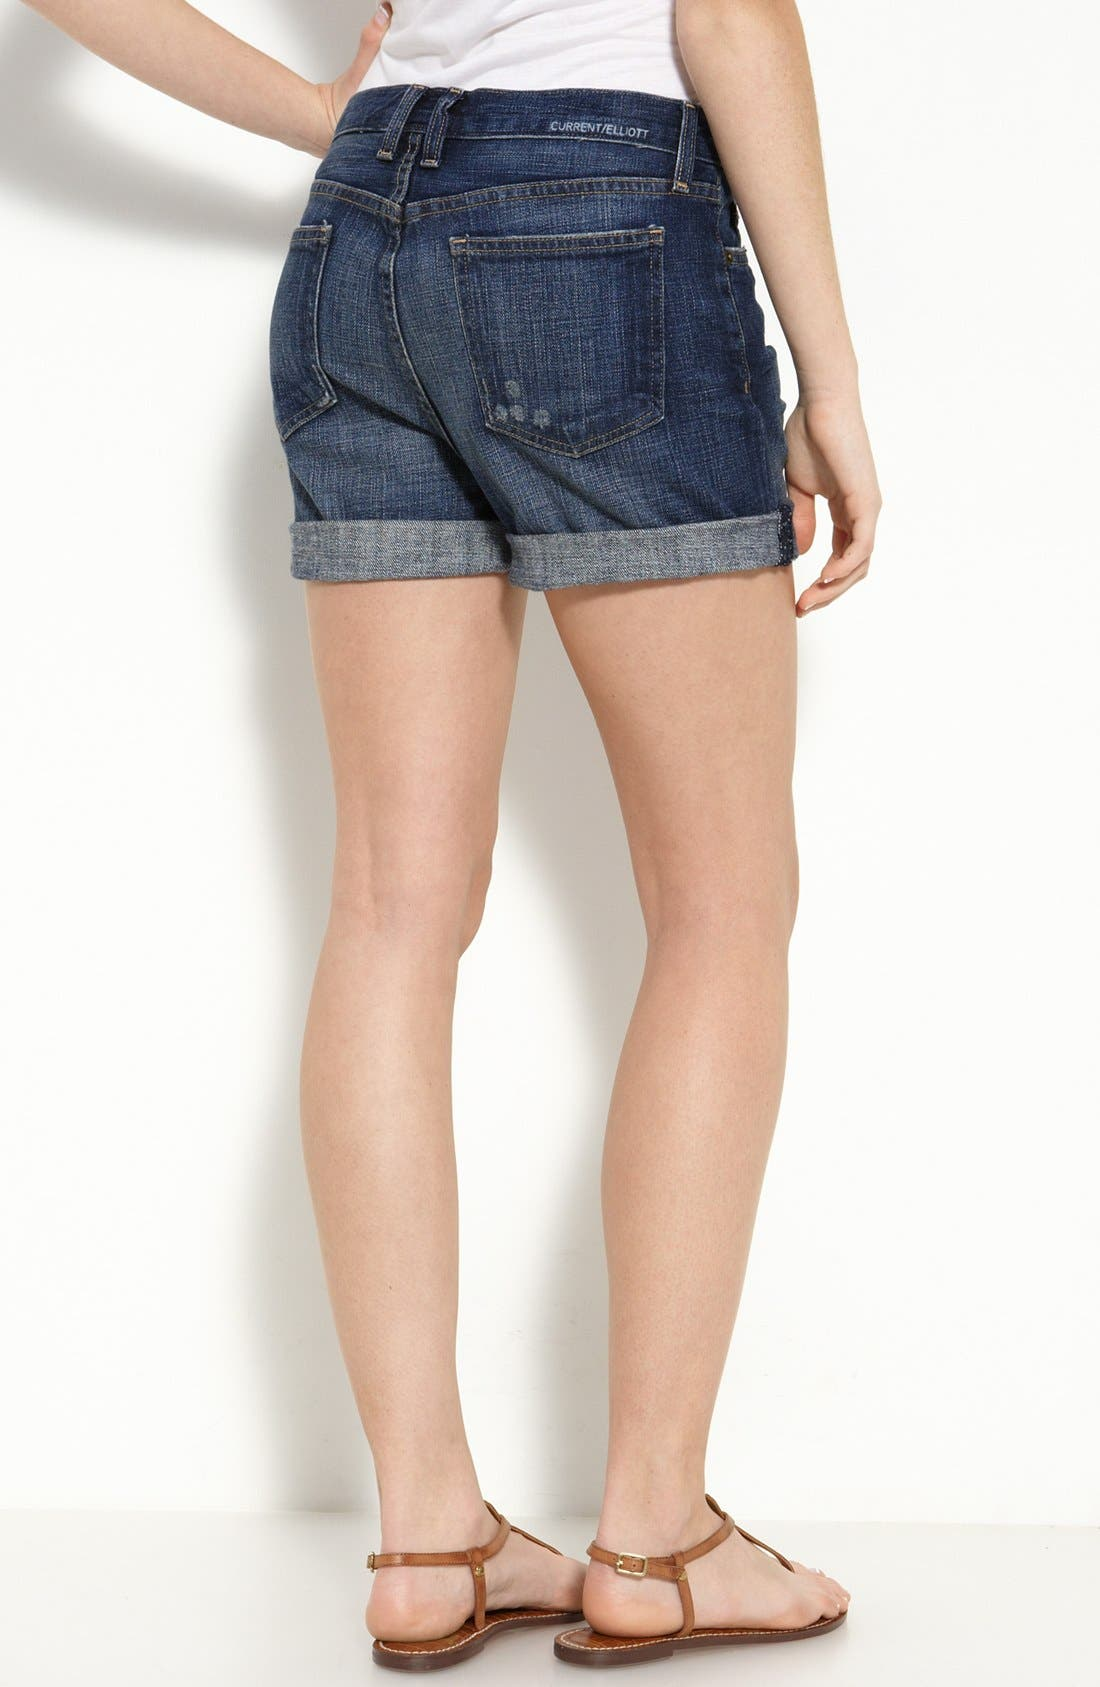 Main Image - Current/Elliott 'The Roll' Stretch Denim Shorts (Loved Wash)